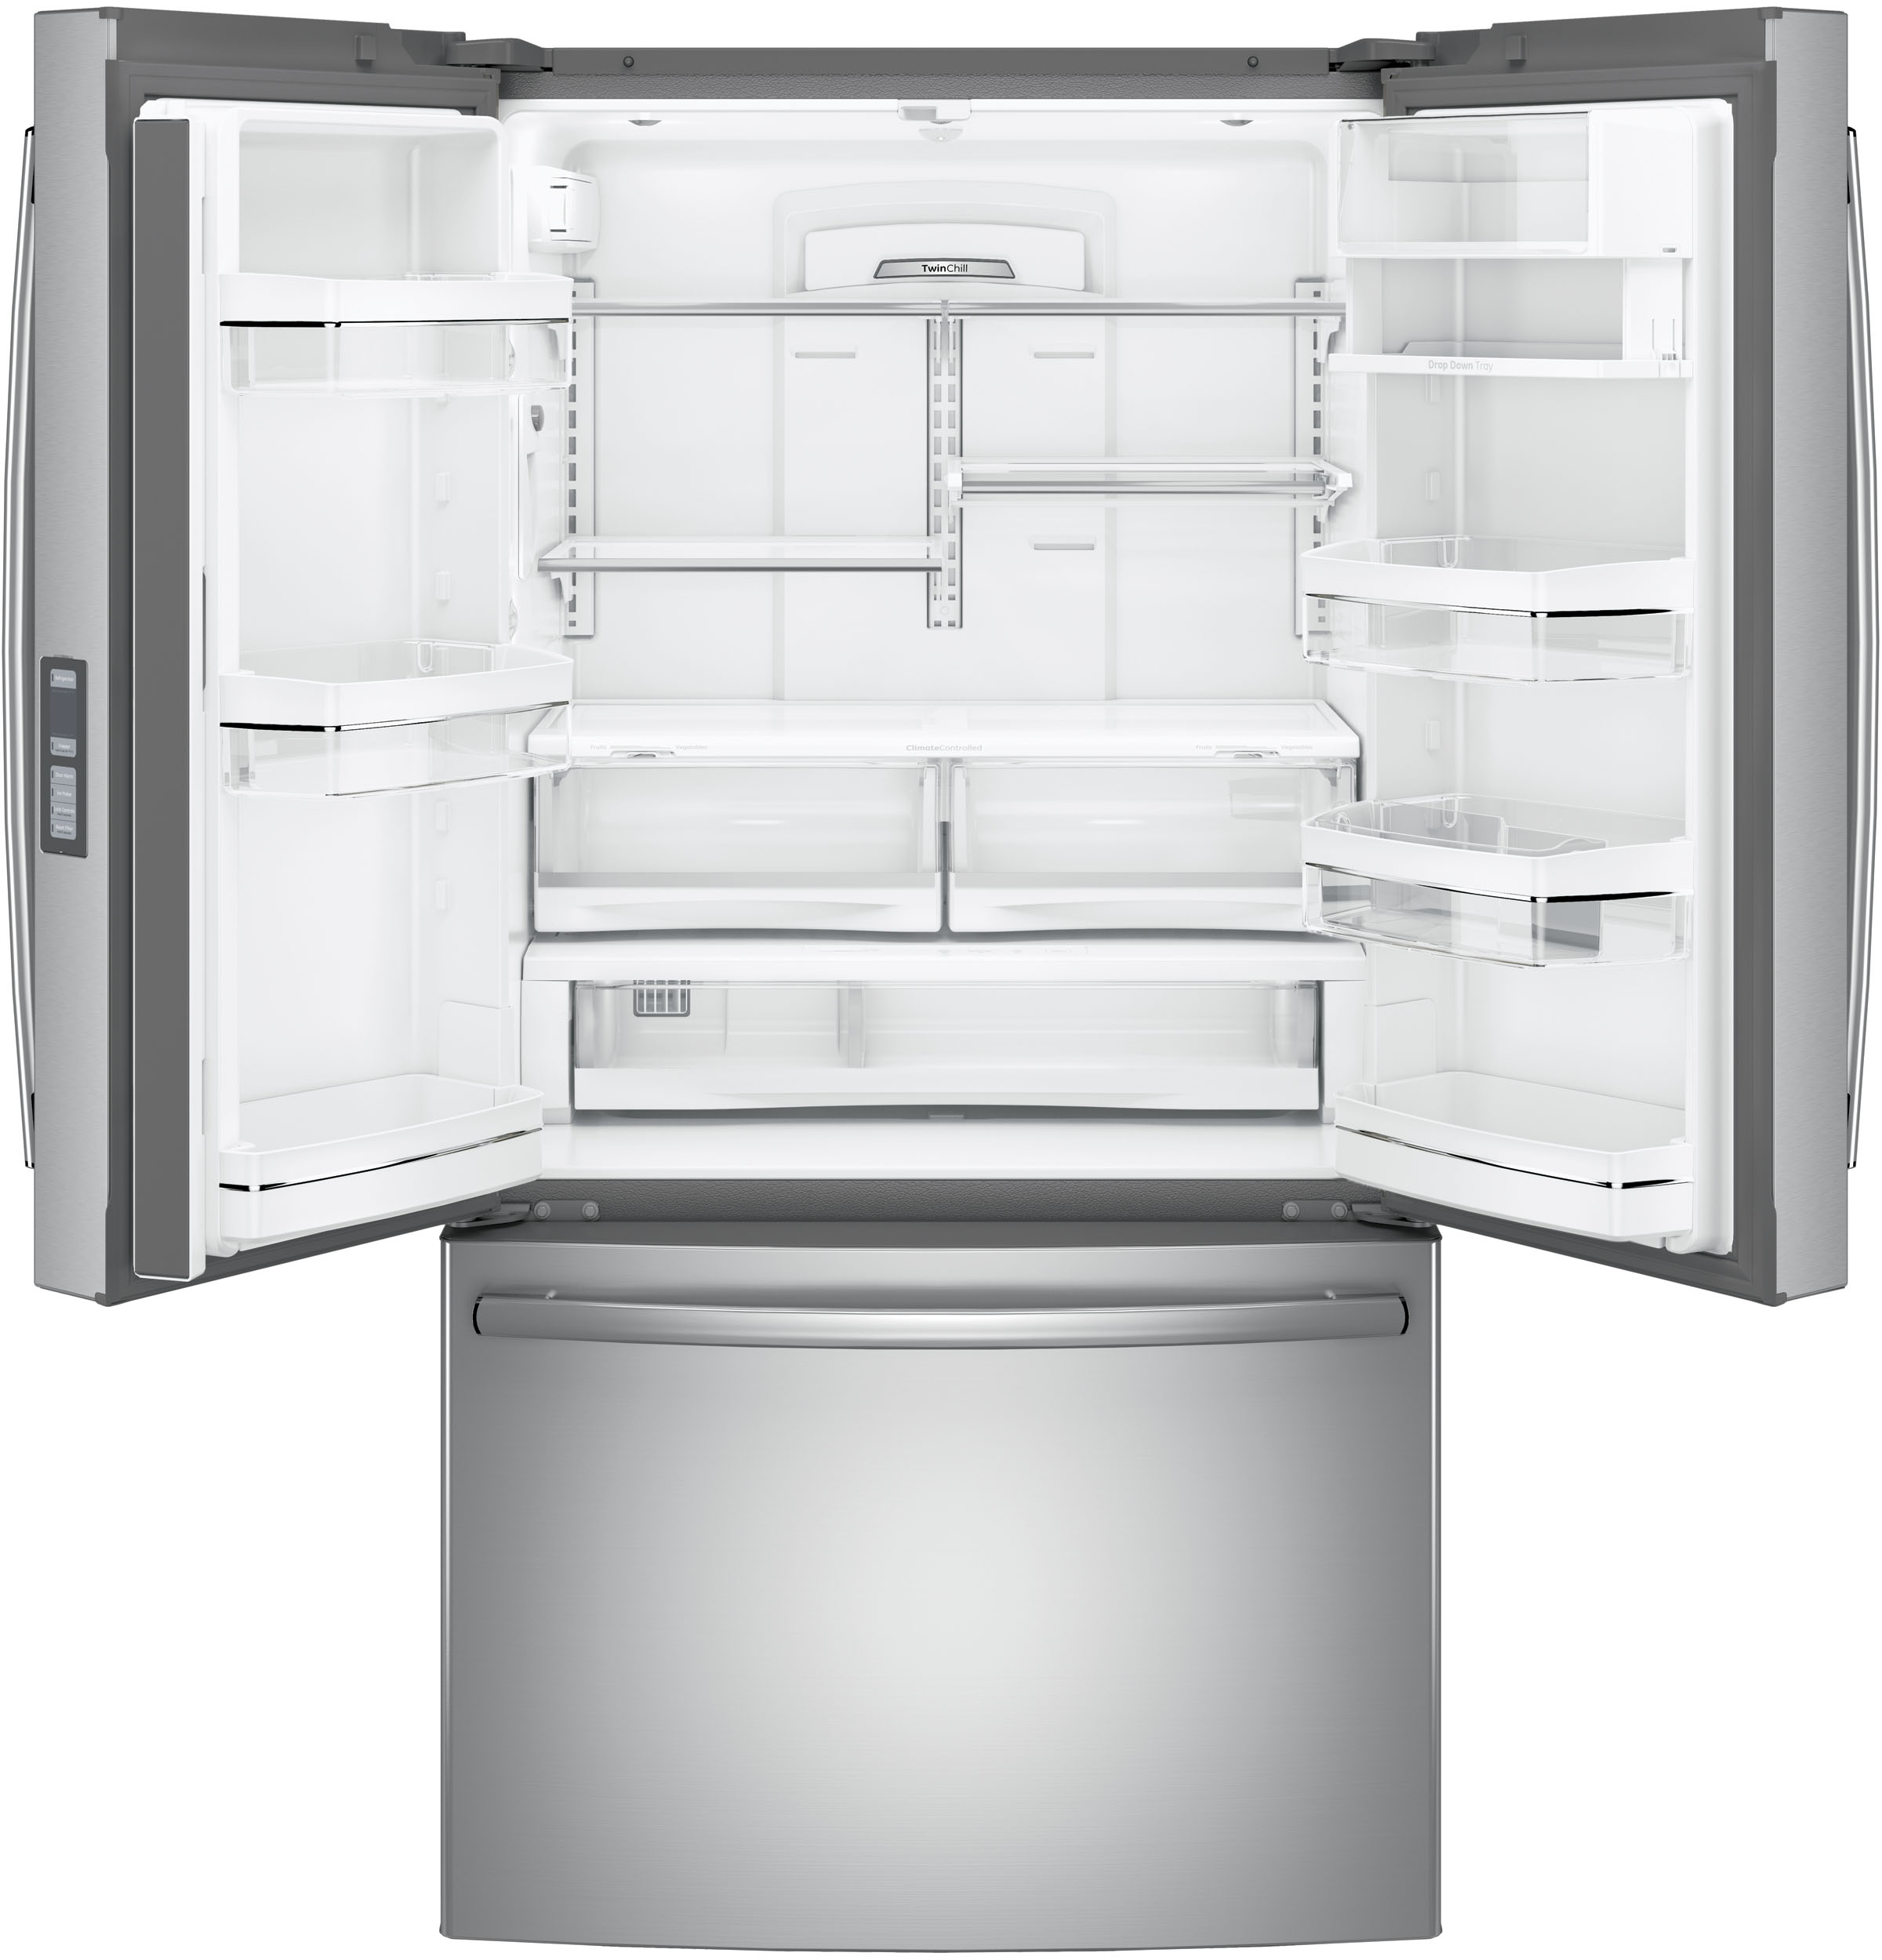 Model: PWE23KSKSS | GE Profile GE Profile™ Series ENERGY STAR® 23.1 Cu. Ft. Counter-Depth French-Door Refrigerator